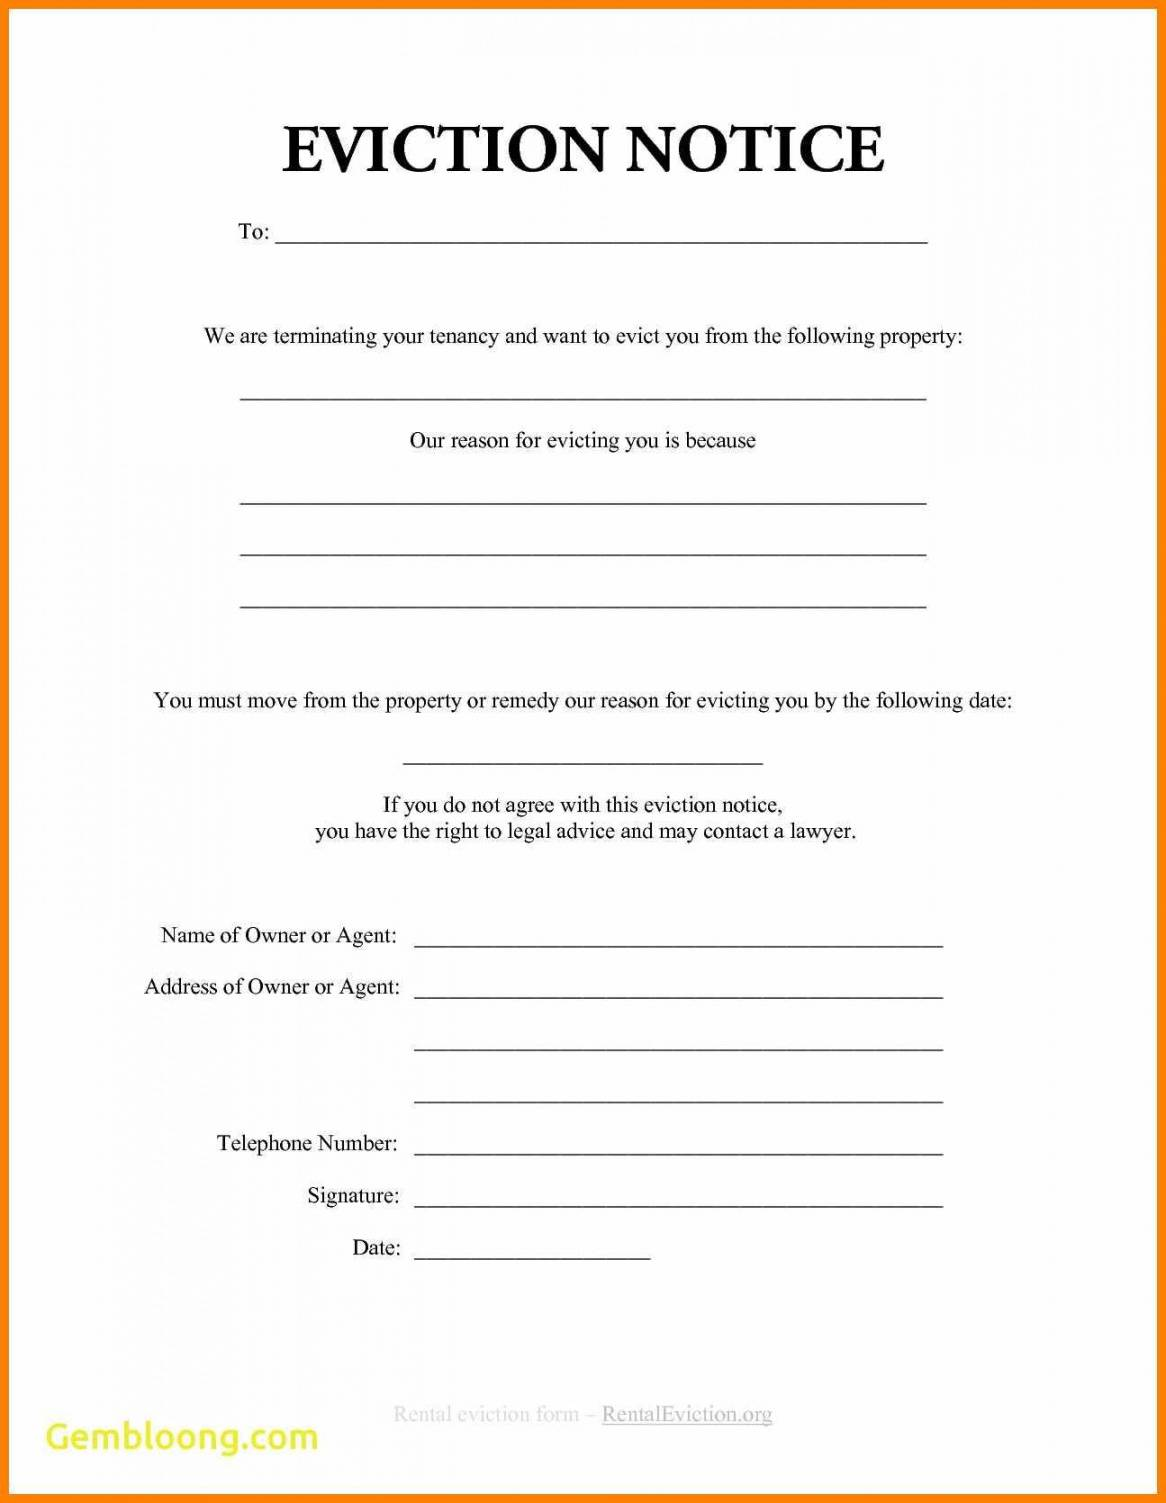 editable 30 day eviction notice form illinois  mbm legal 30 day eviction notice template illinois sample